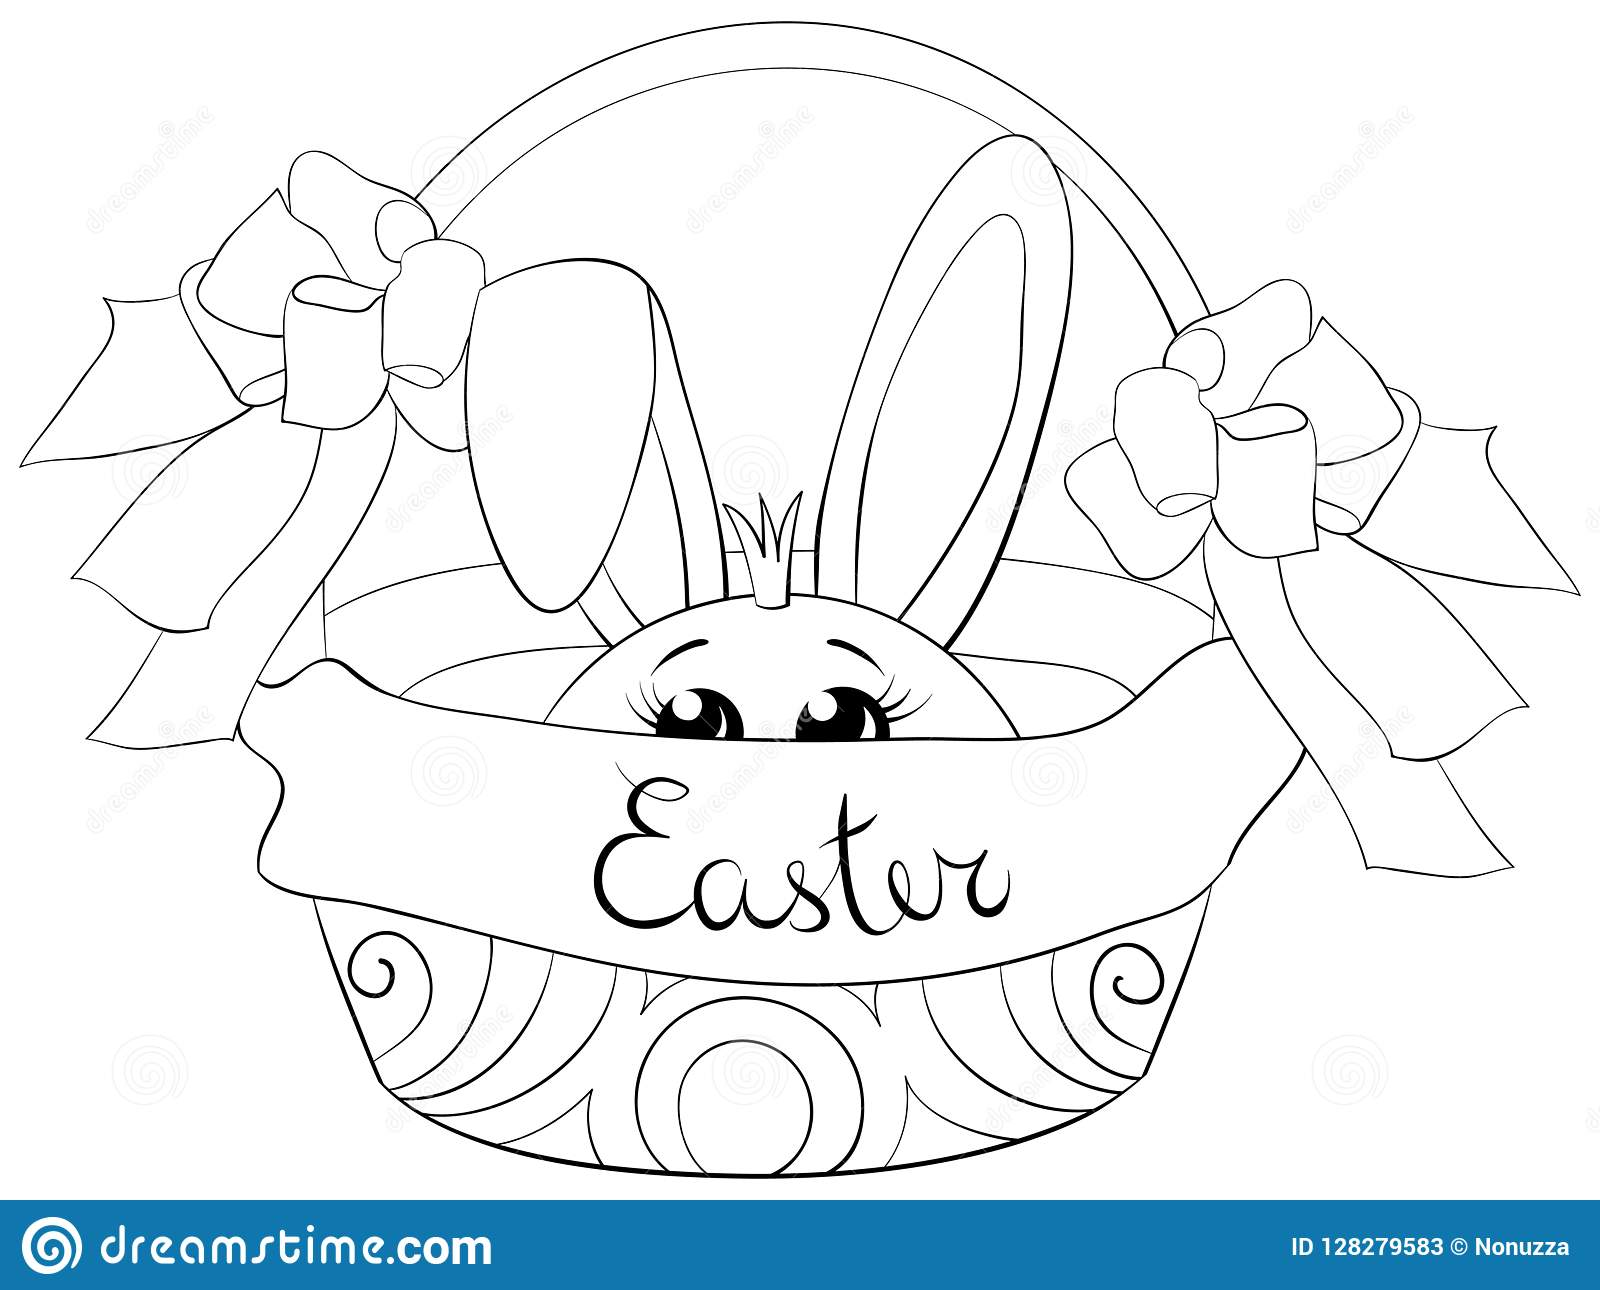 Coloring Page,book A Cute Bunny In The Basket Image For ...